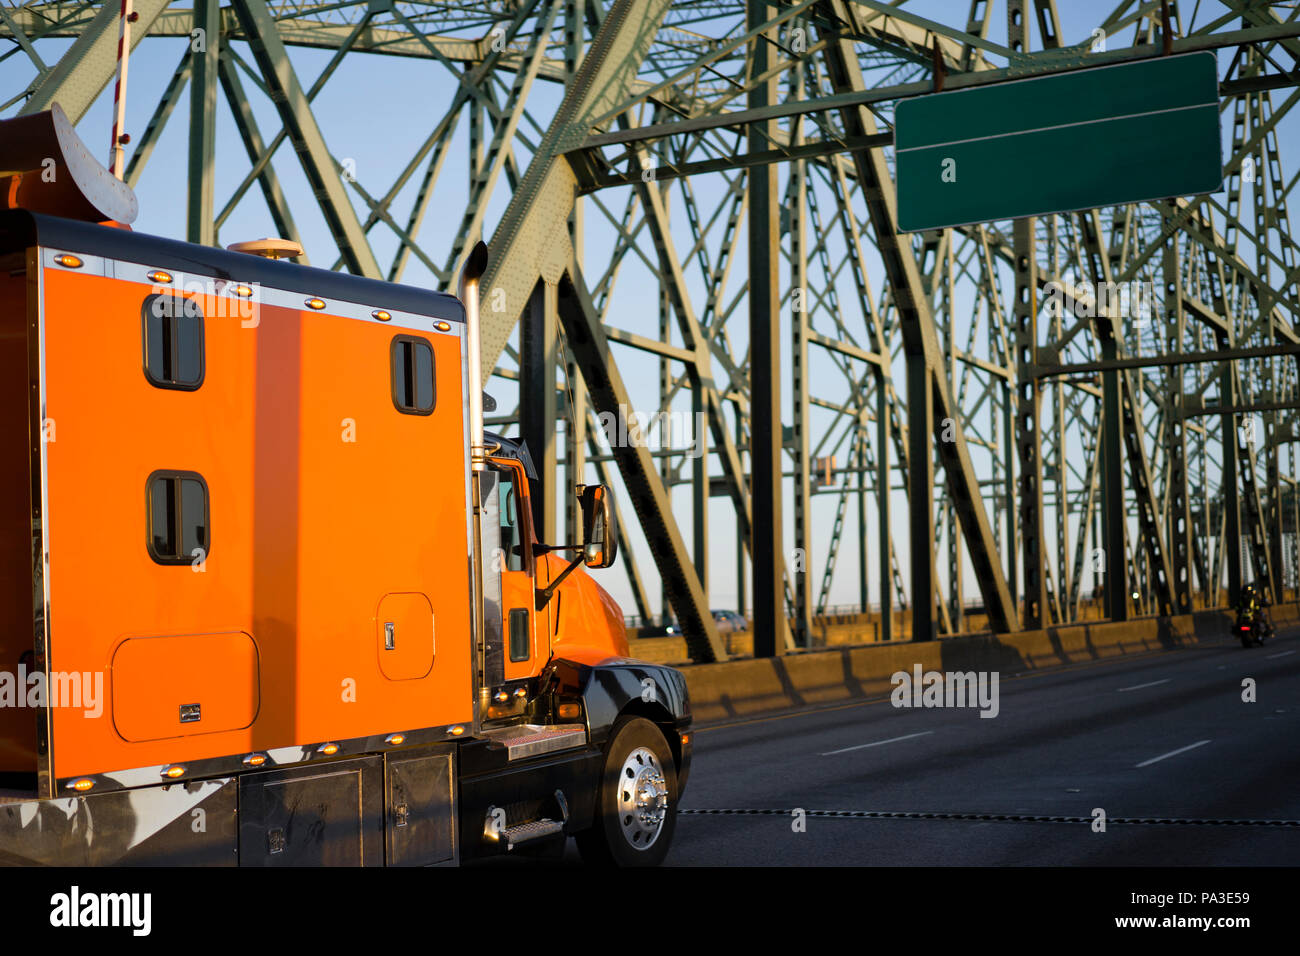 Orange big rig long haul semi truck with extra long cabin for truck driver rest driving alone interstate highway transporting commercial cargo moving  - Stock Image